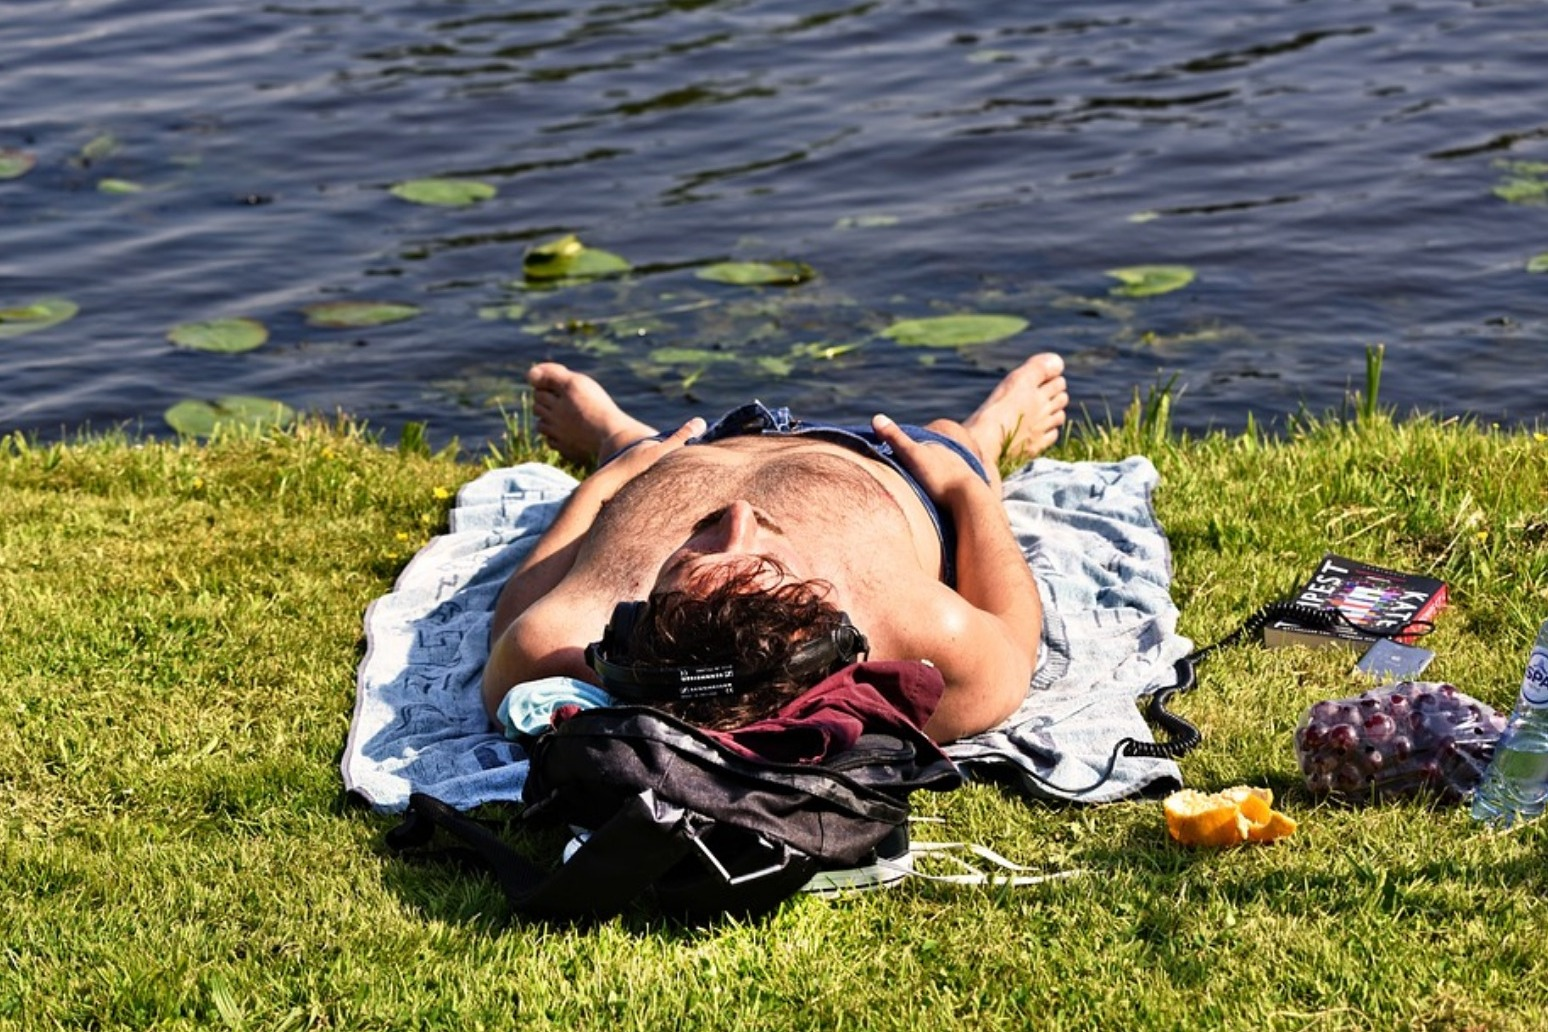 UK in the grip of a heatwave with temperatures expected to exceed 30C